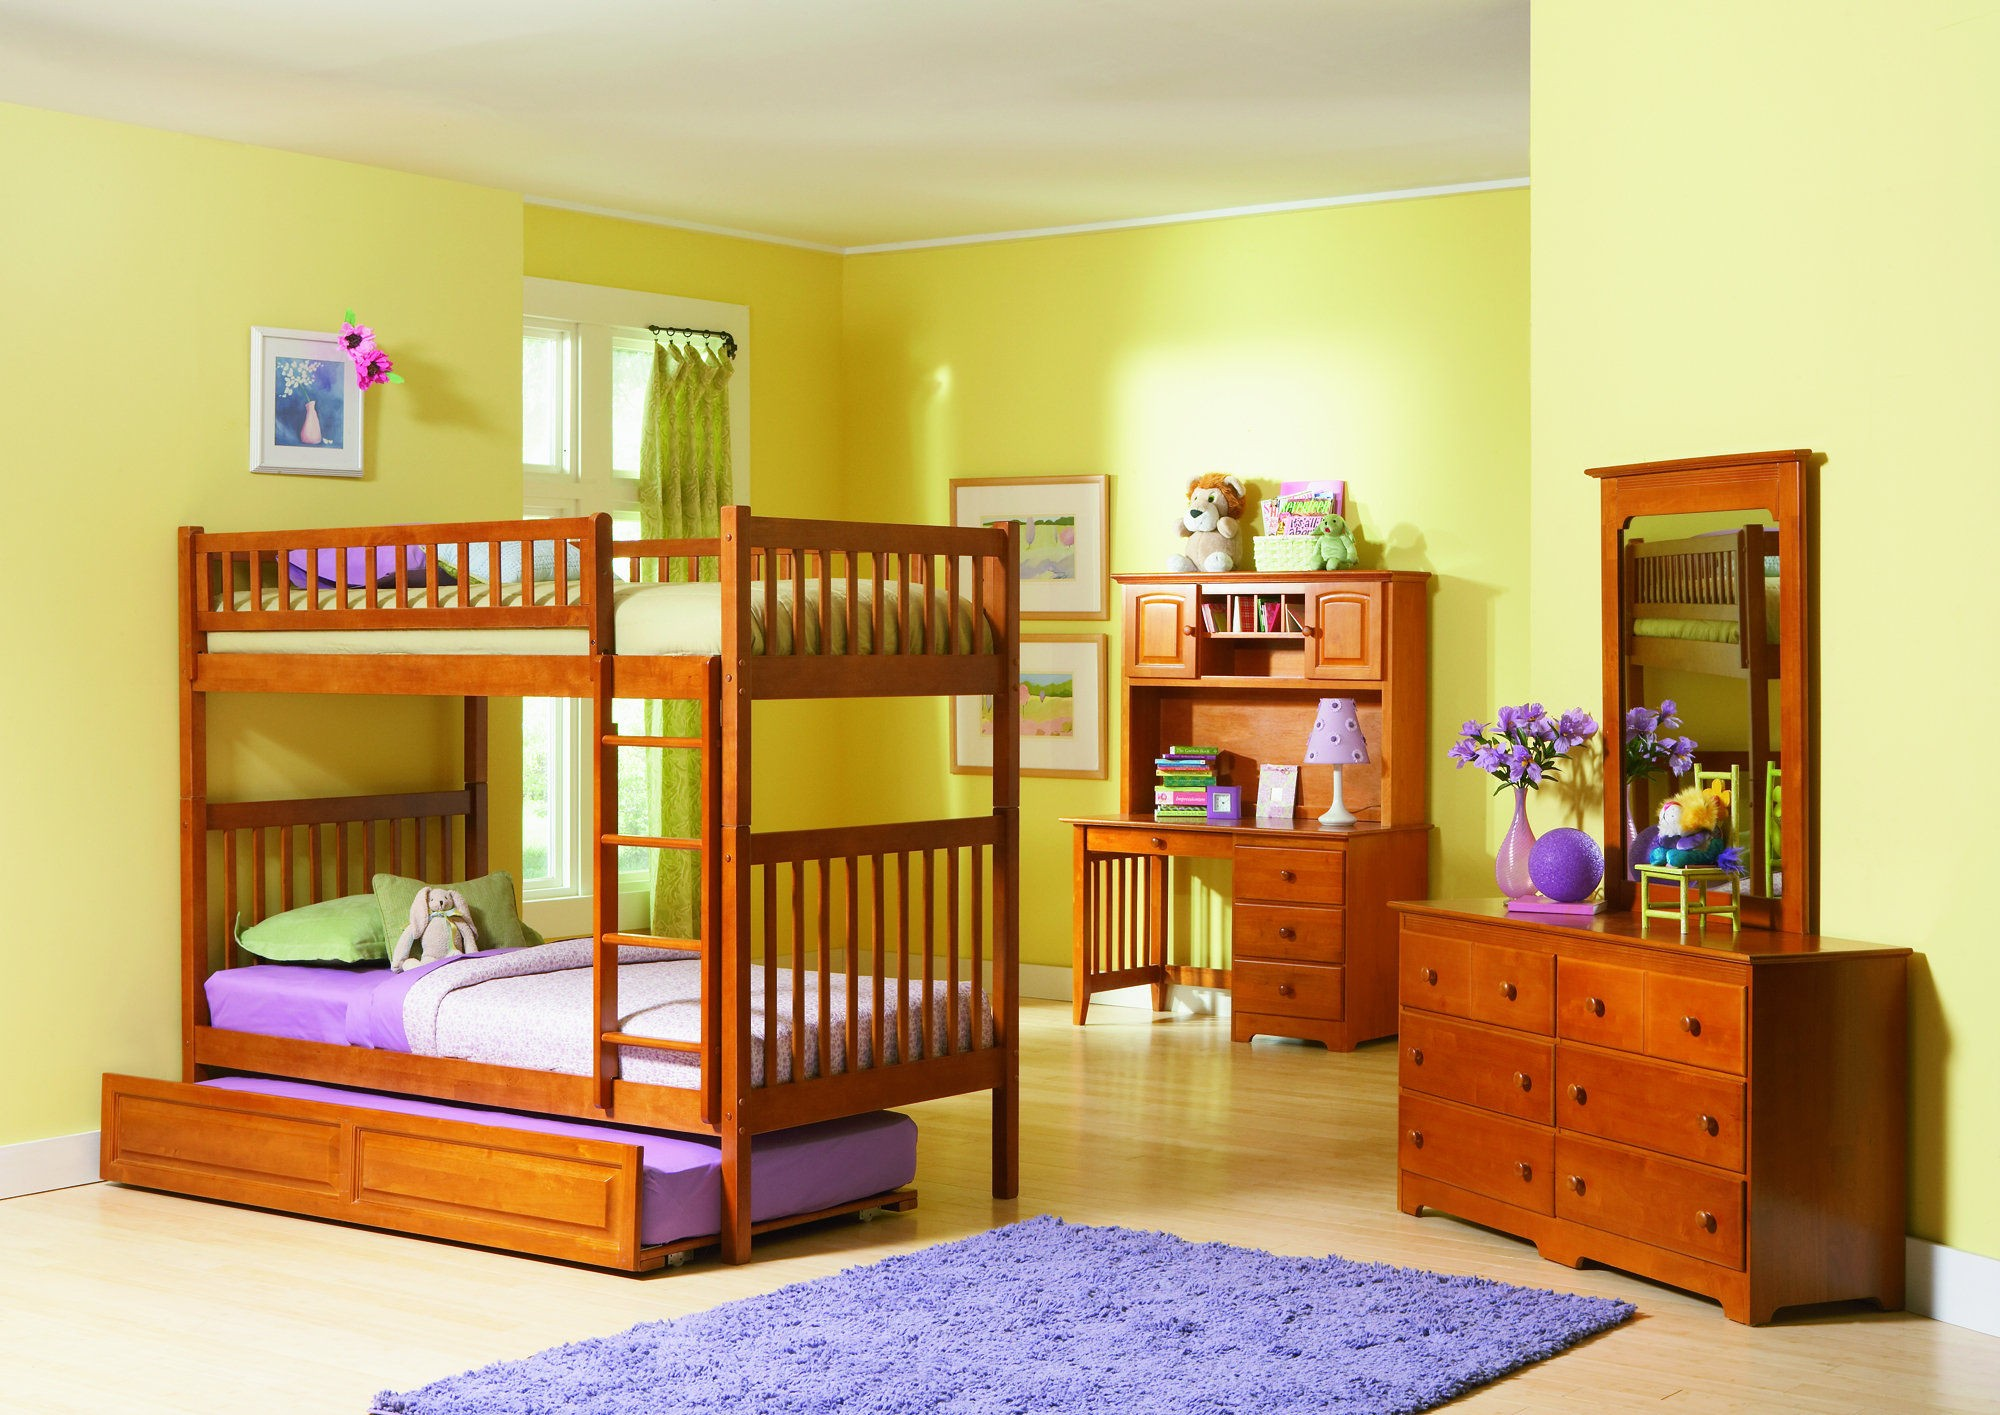 childrens bedroom furniture good room arrangement for bedroom decorating  ideas for your JKLKMNF